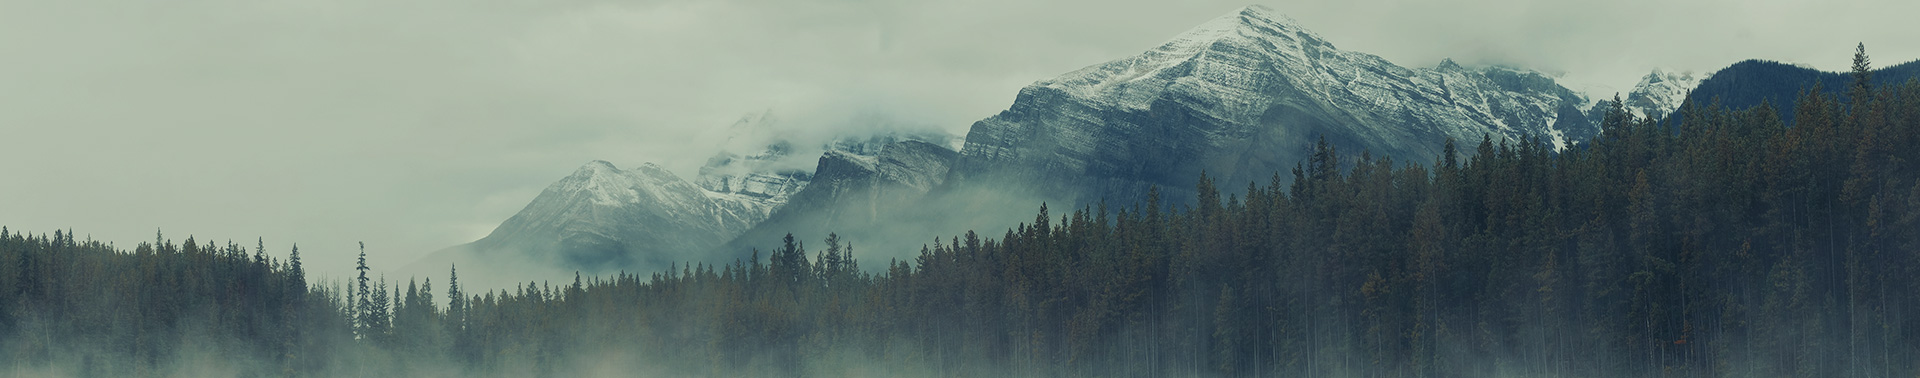 Why Wellspring - trees and mountains in the evening